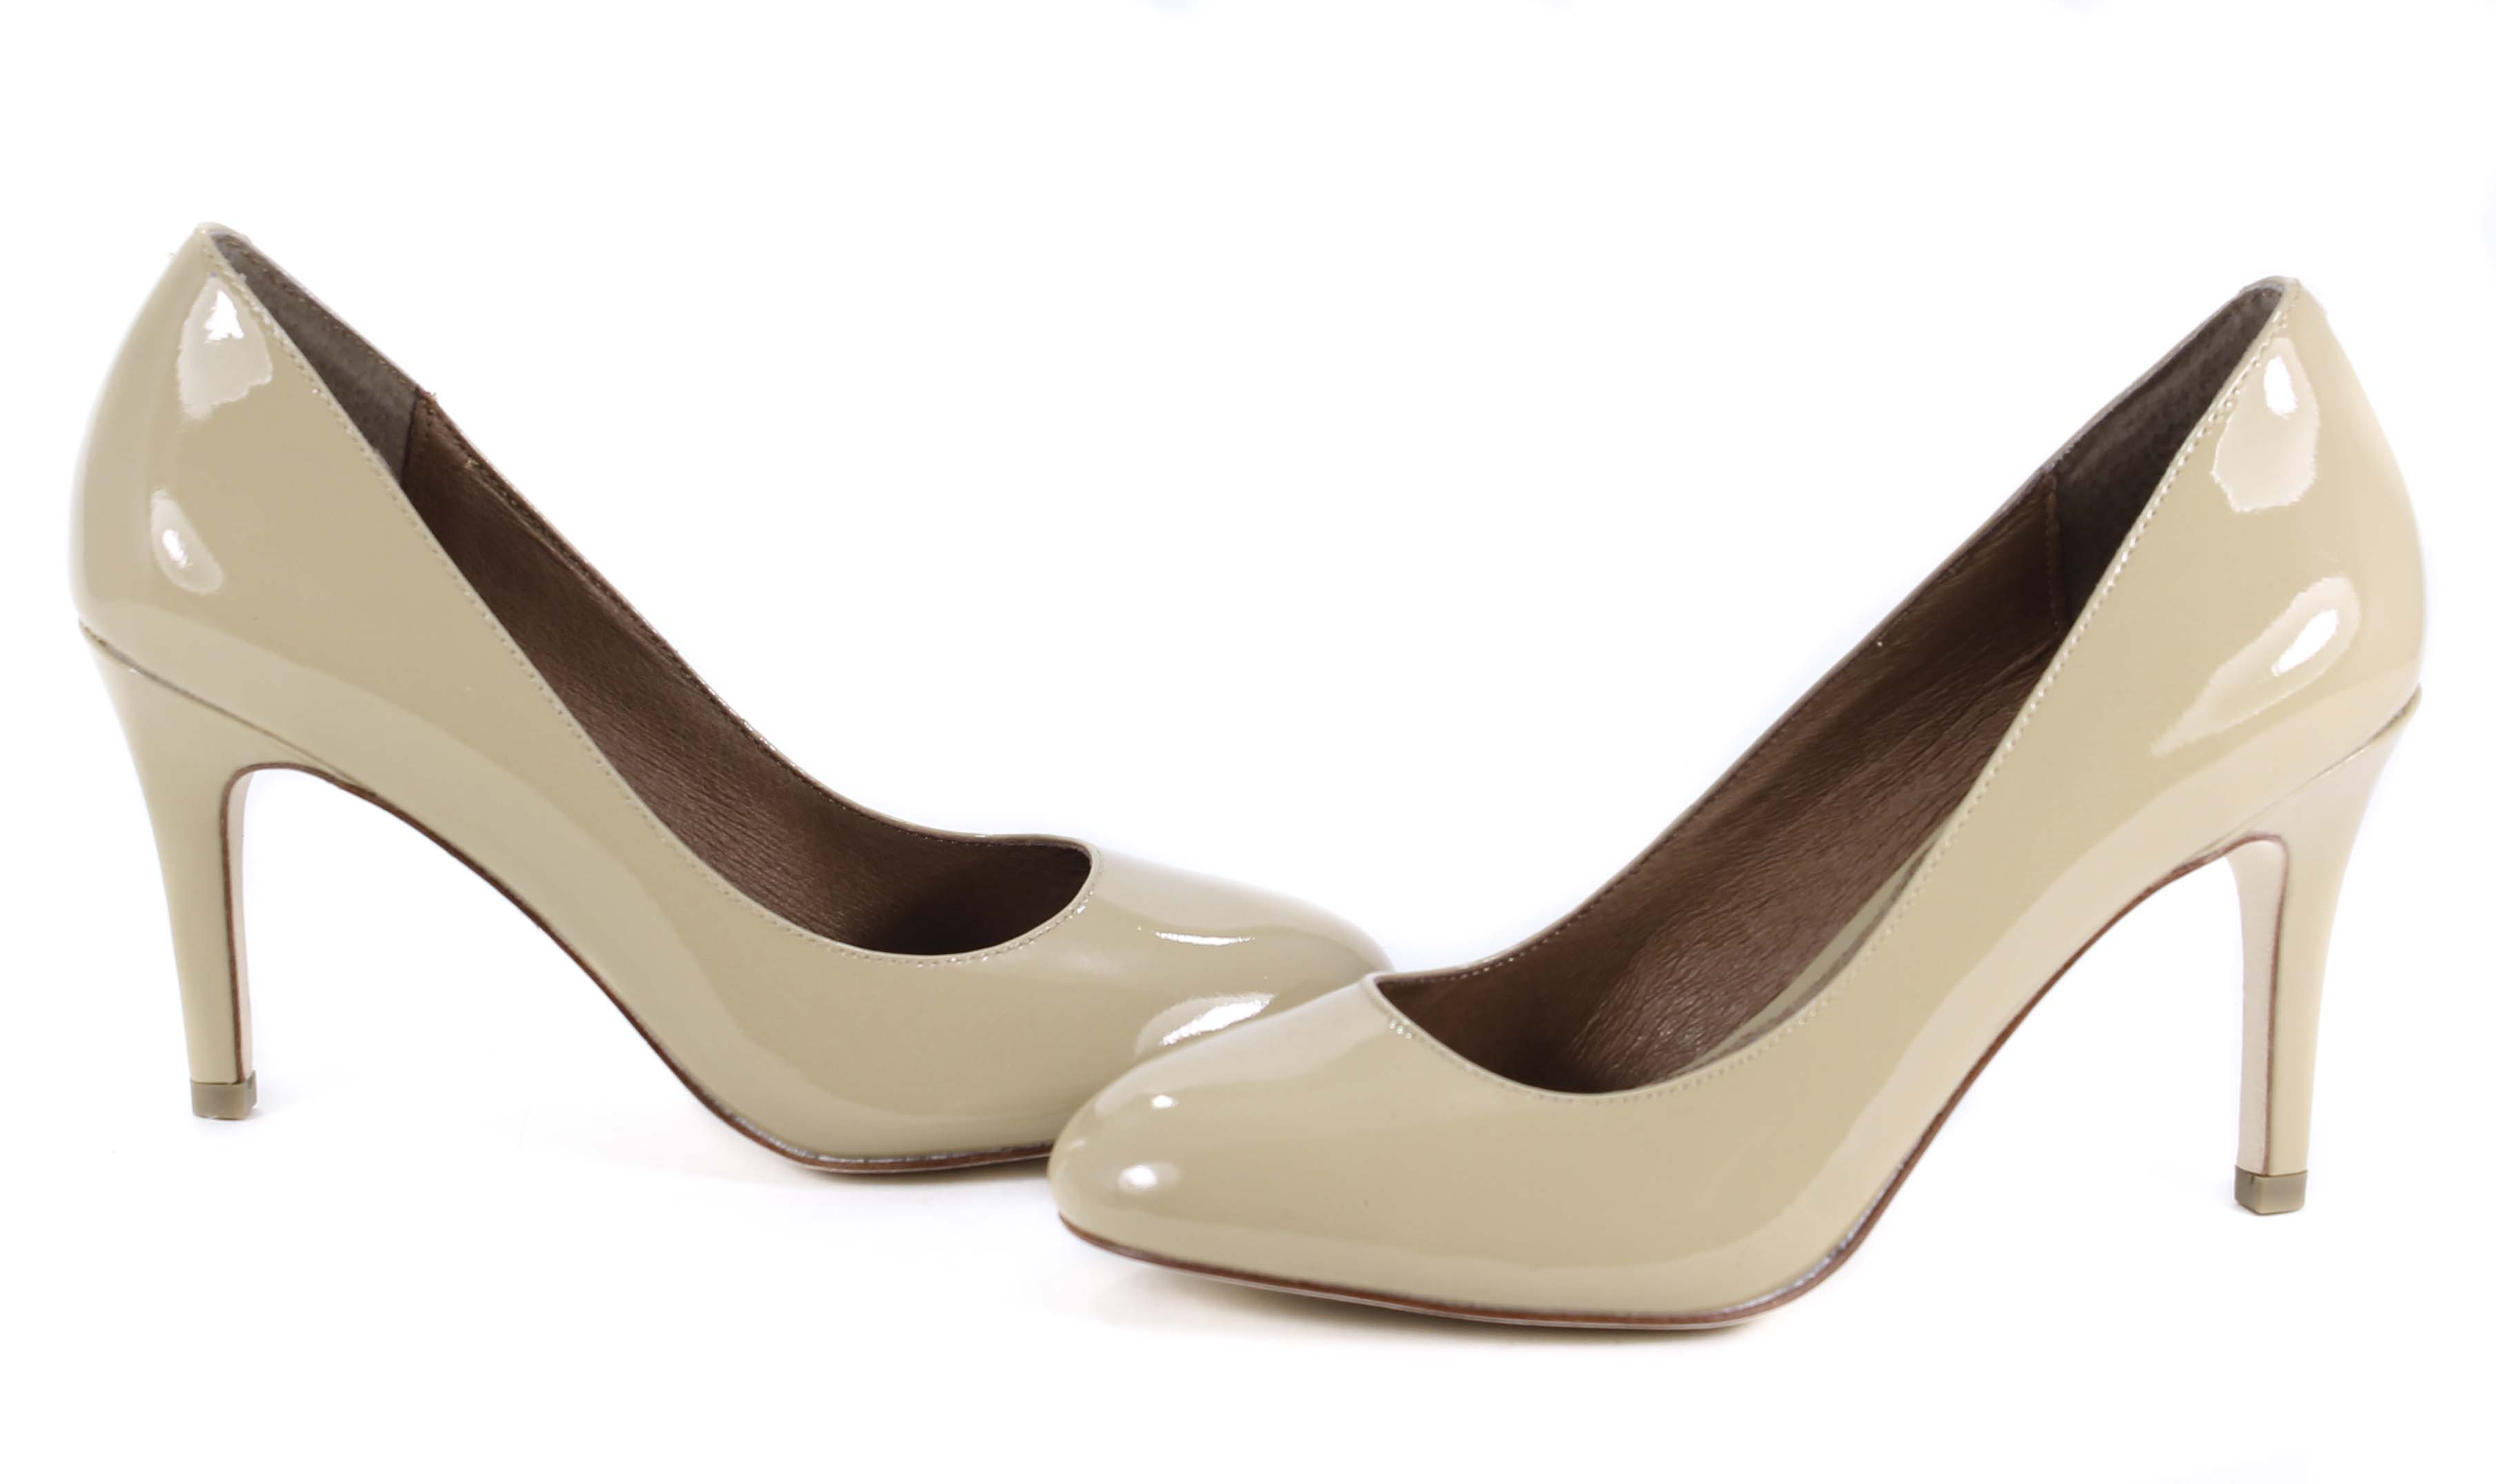 Find great deals on eBay for beige patent leather shoes. Shop with confidence.